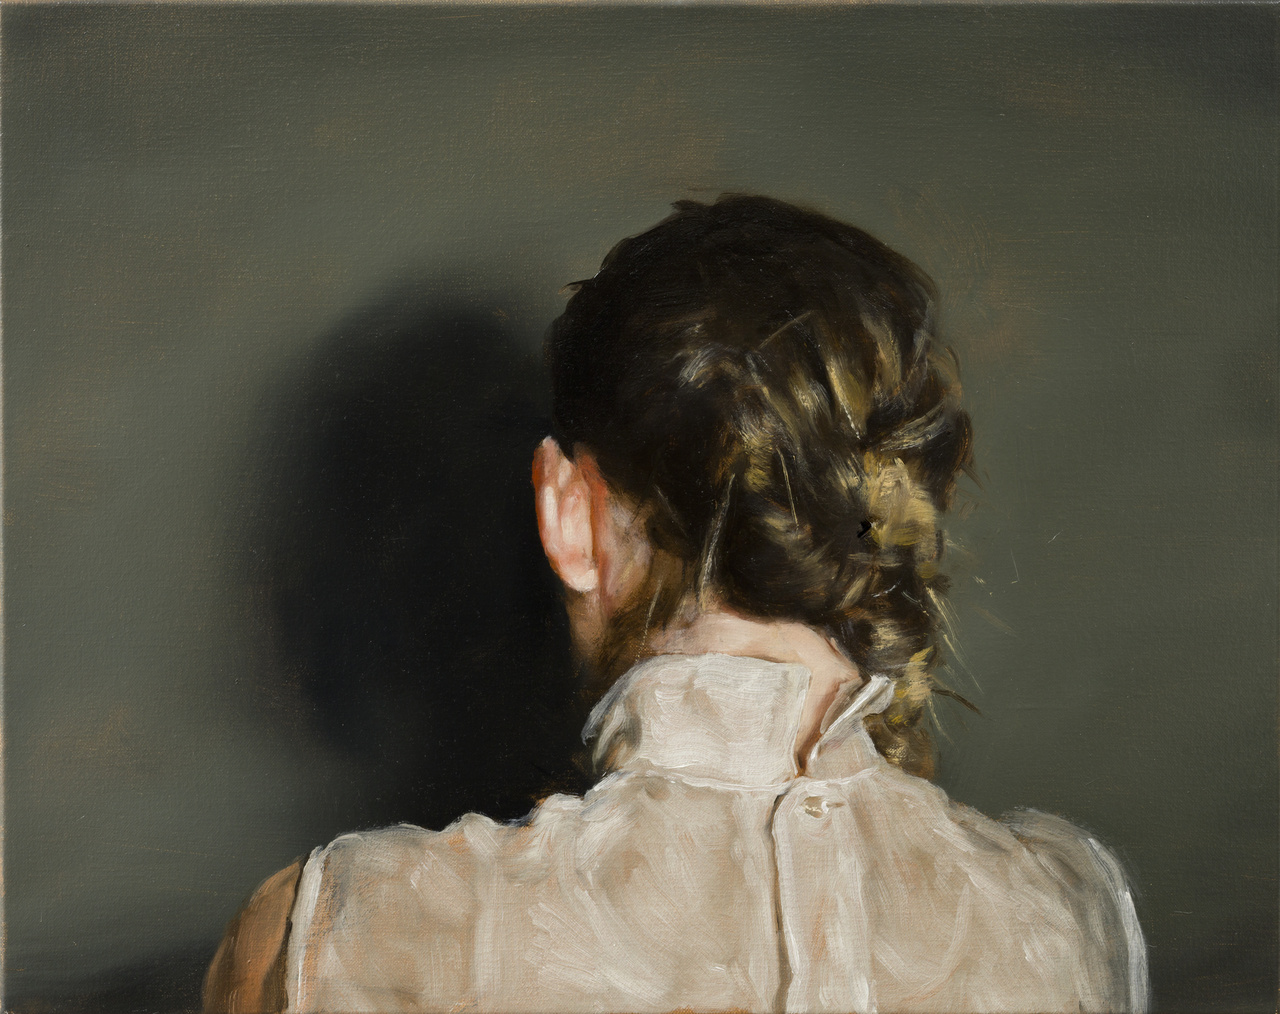 MICHAËL BORREMANS 'The Ear' (2011)